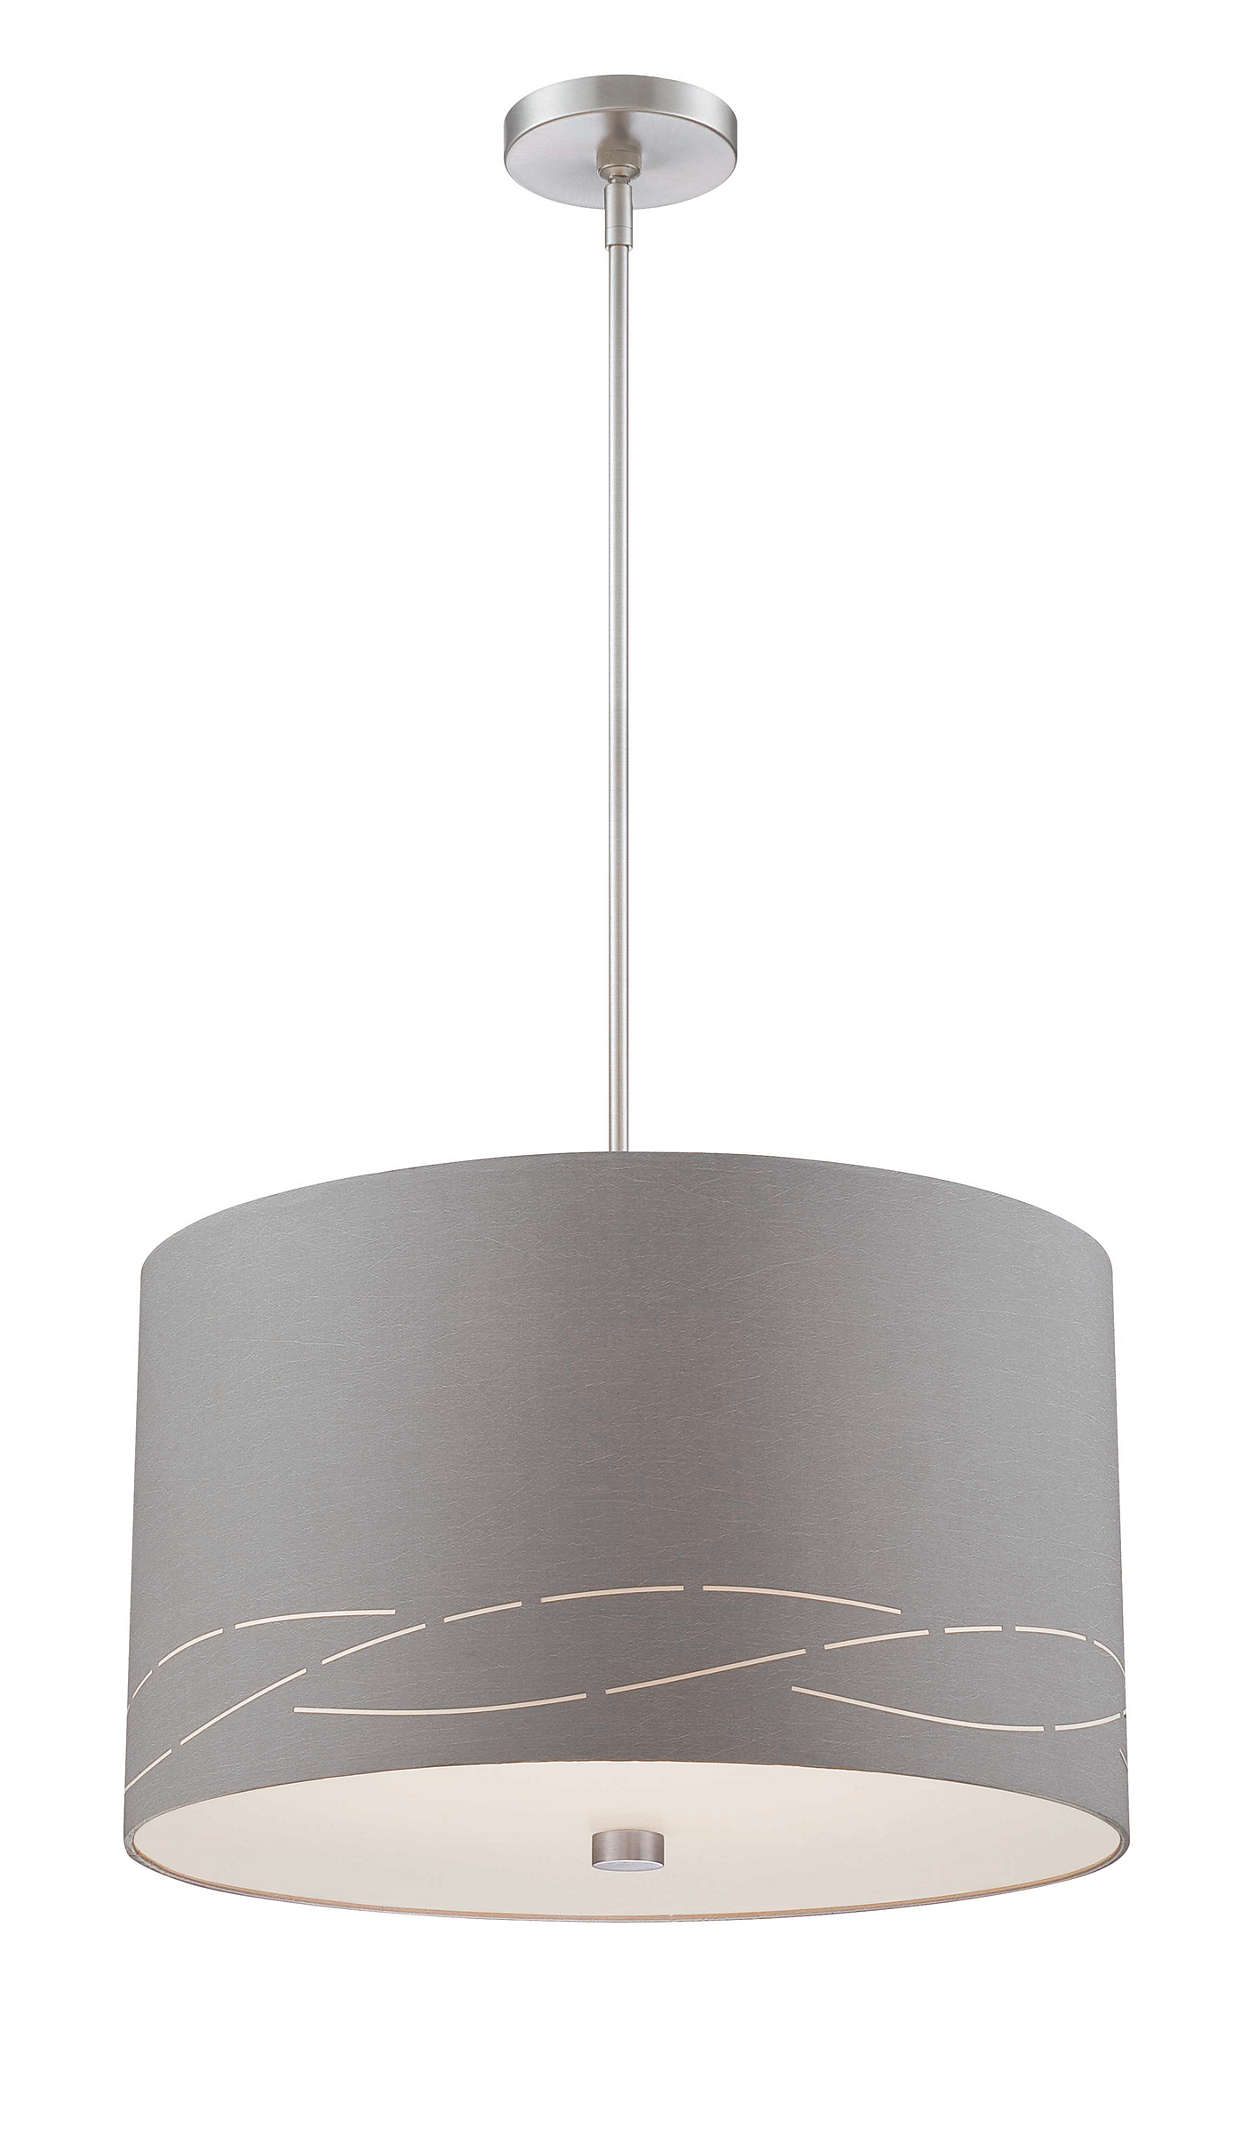 Silver Laser 2-light pendant, Satin Nickel finish